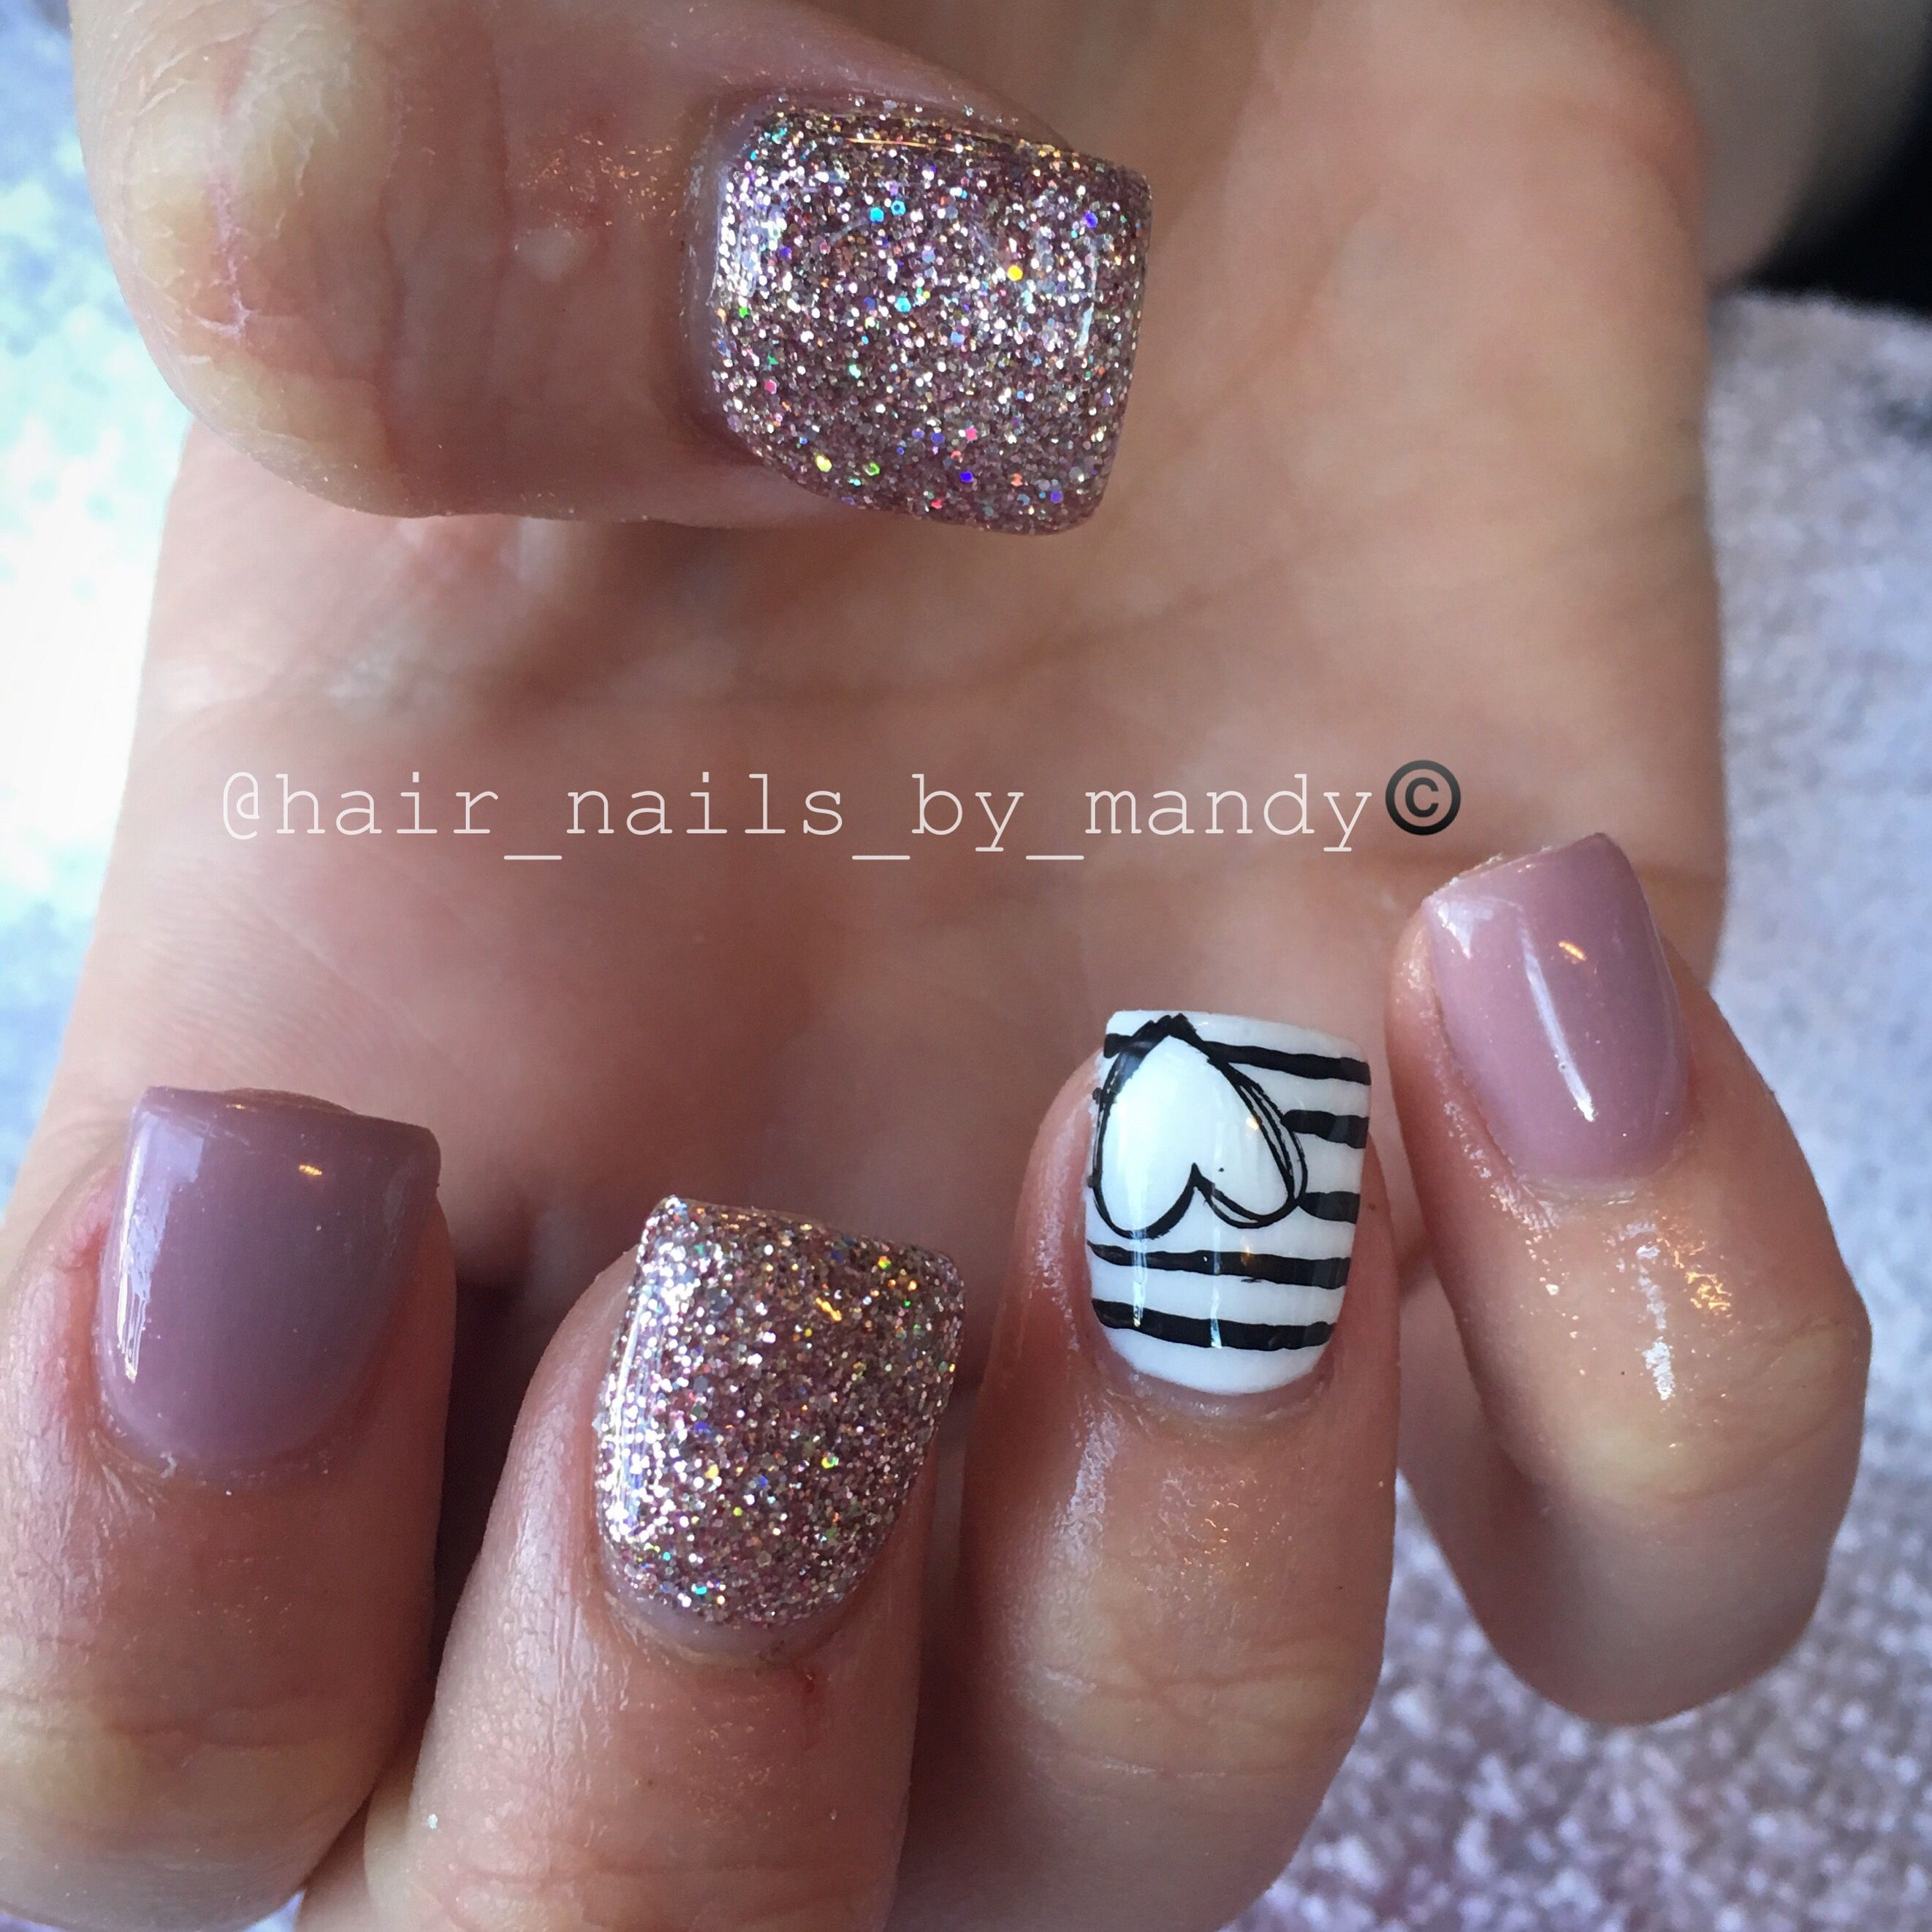 Pin by scarlet connor on Nails   Pinterest